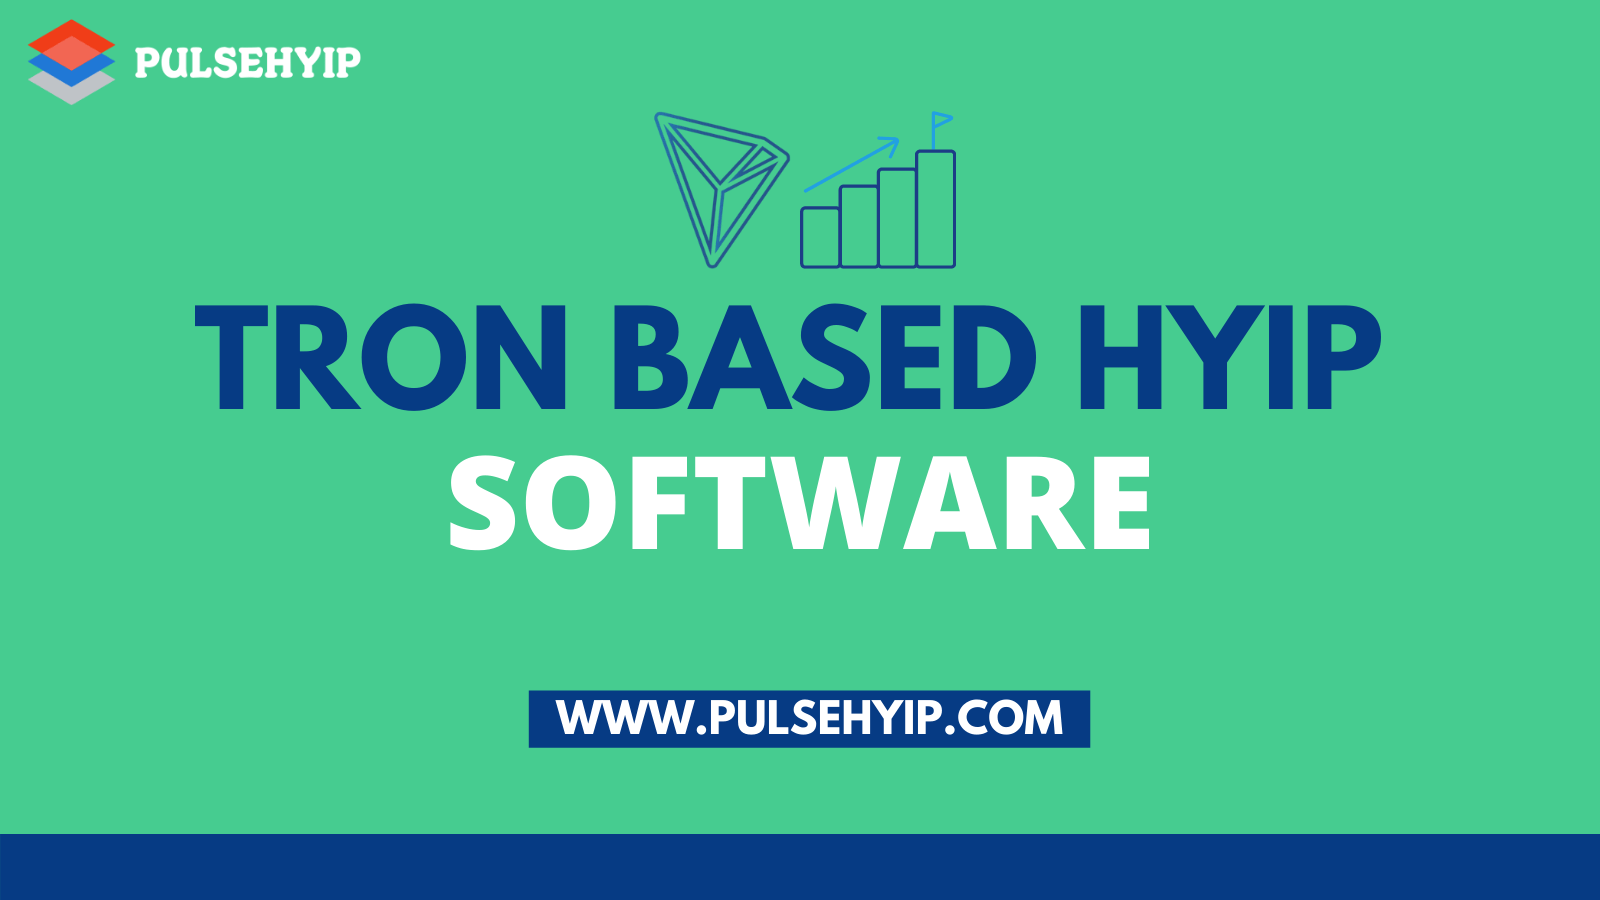 WHY SHOULD BUILD HYIP SOFTWARE ON TRON NETWORK? ALL YOU NEED TO KNOW